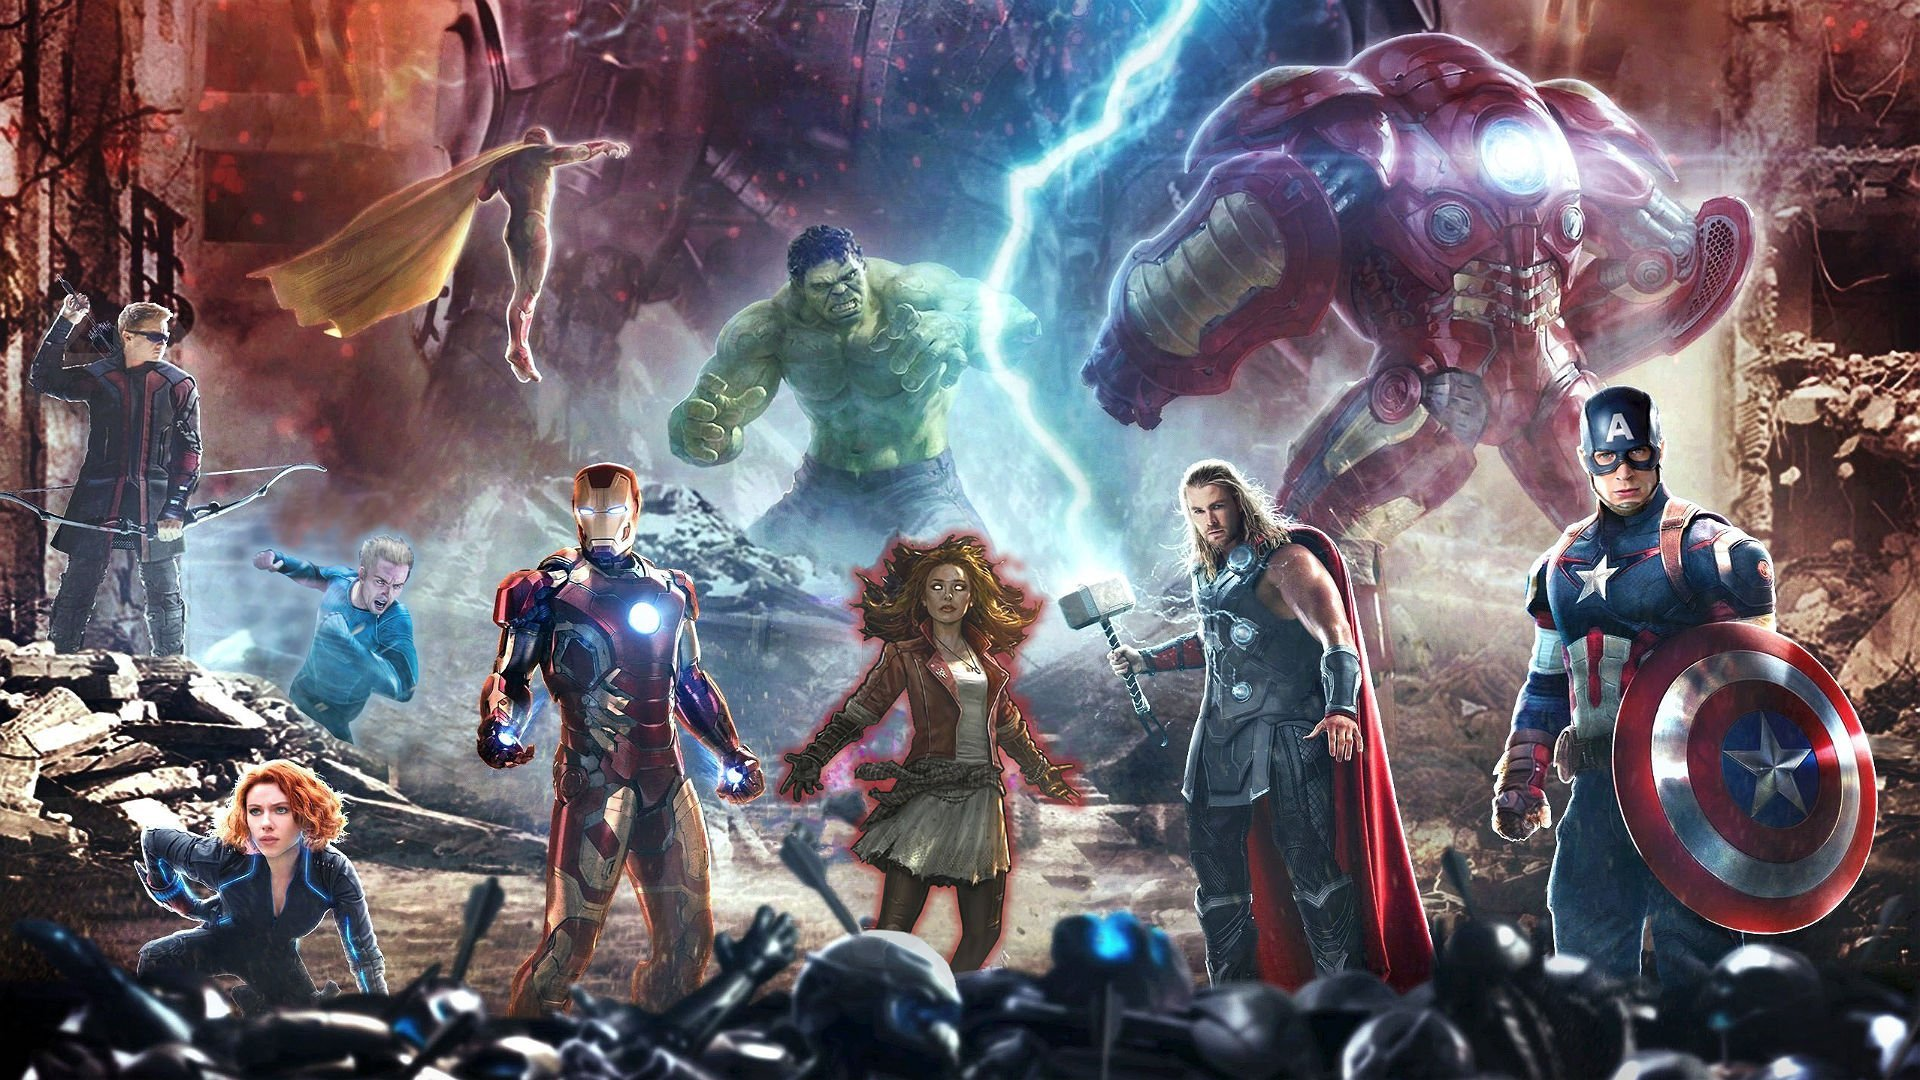 Avengers Infinity War Marvel Movie Wallpaper For Phone And